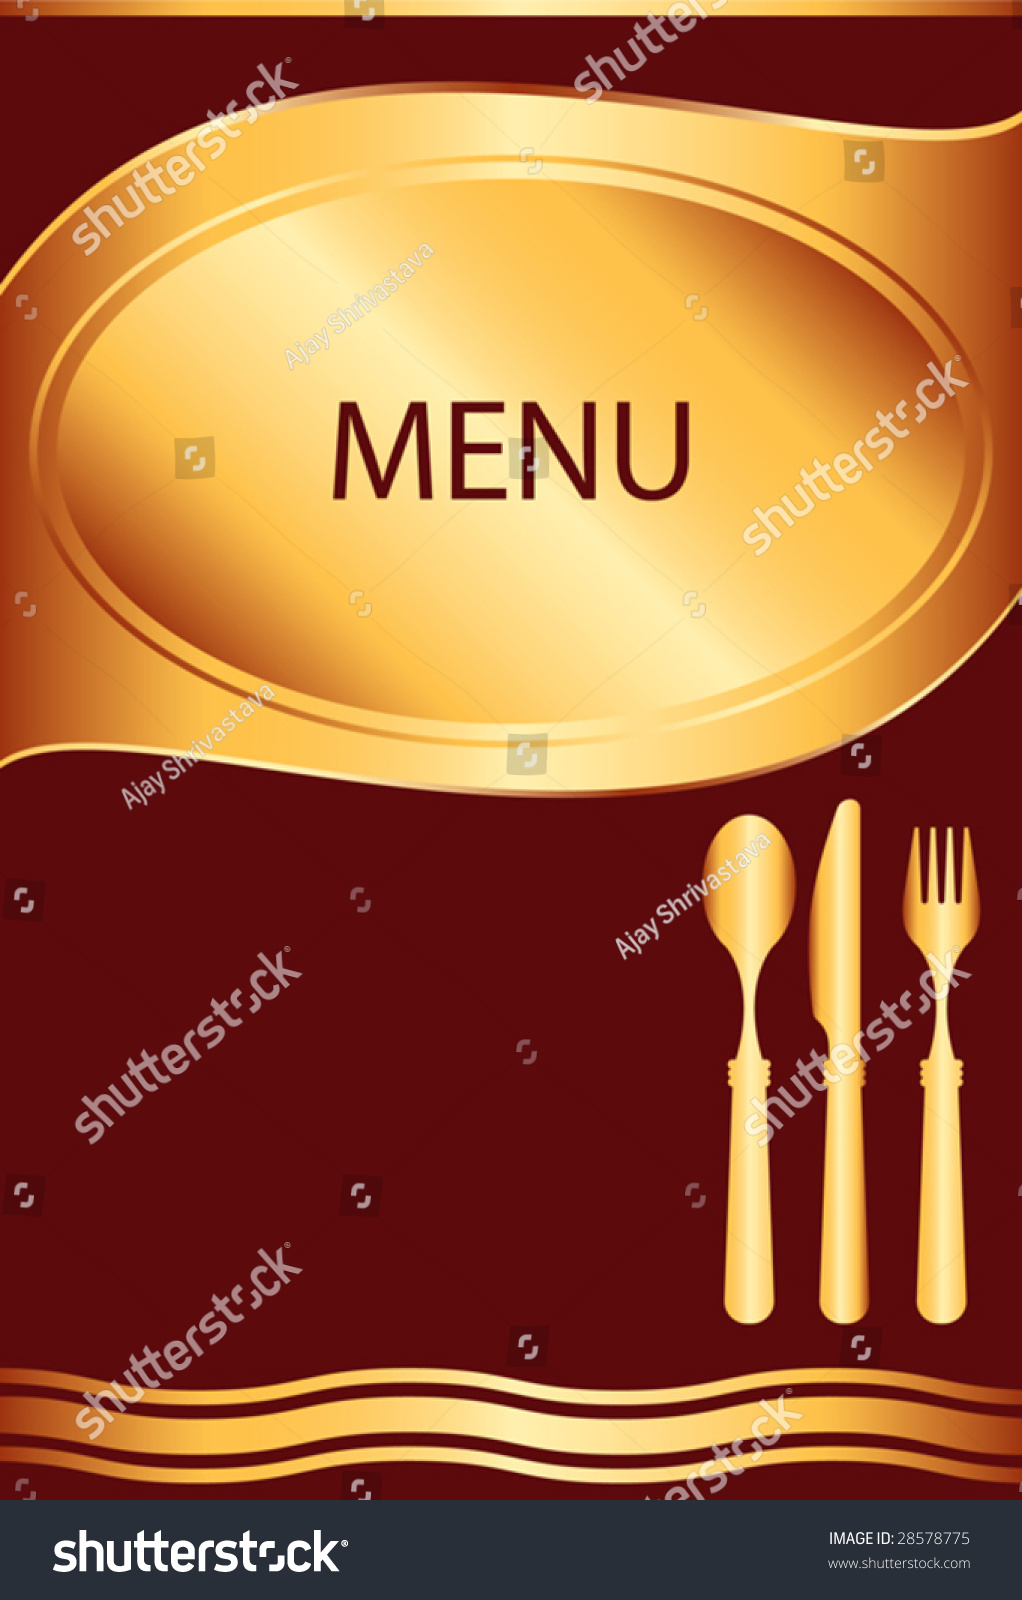 Food restaurant hotel menu template design stock vector for Frequent diner card template